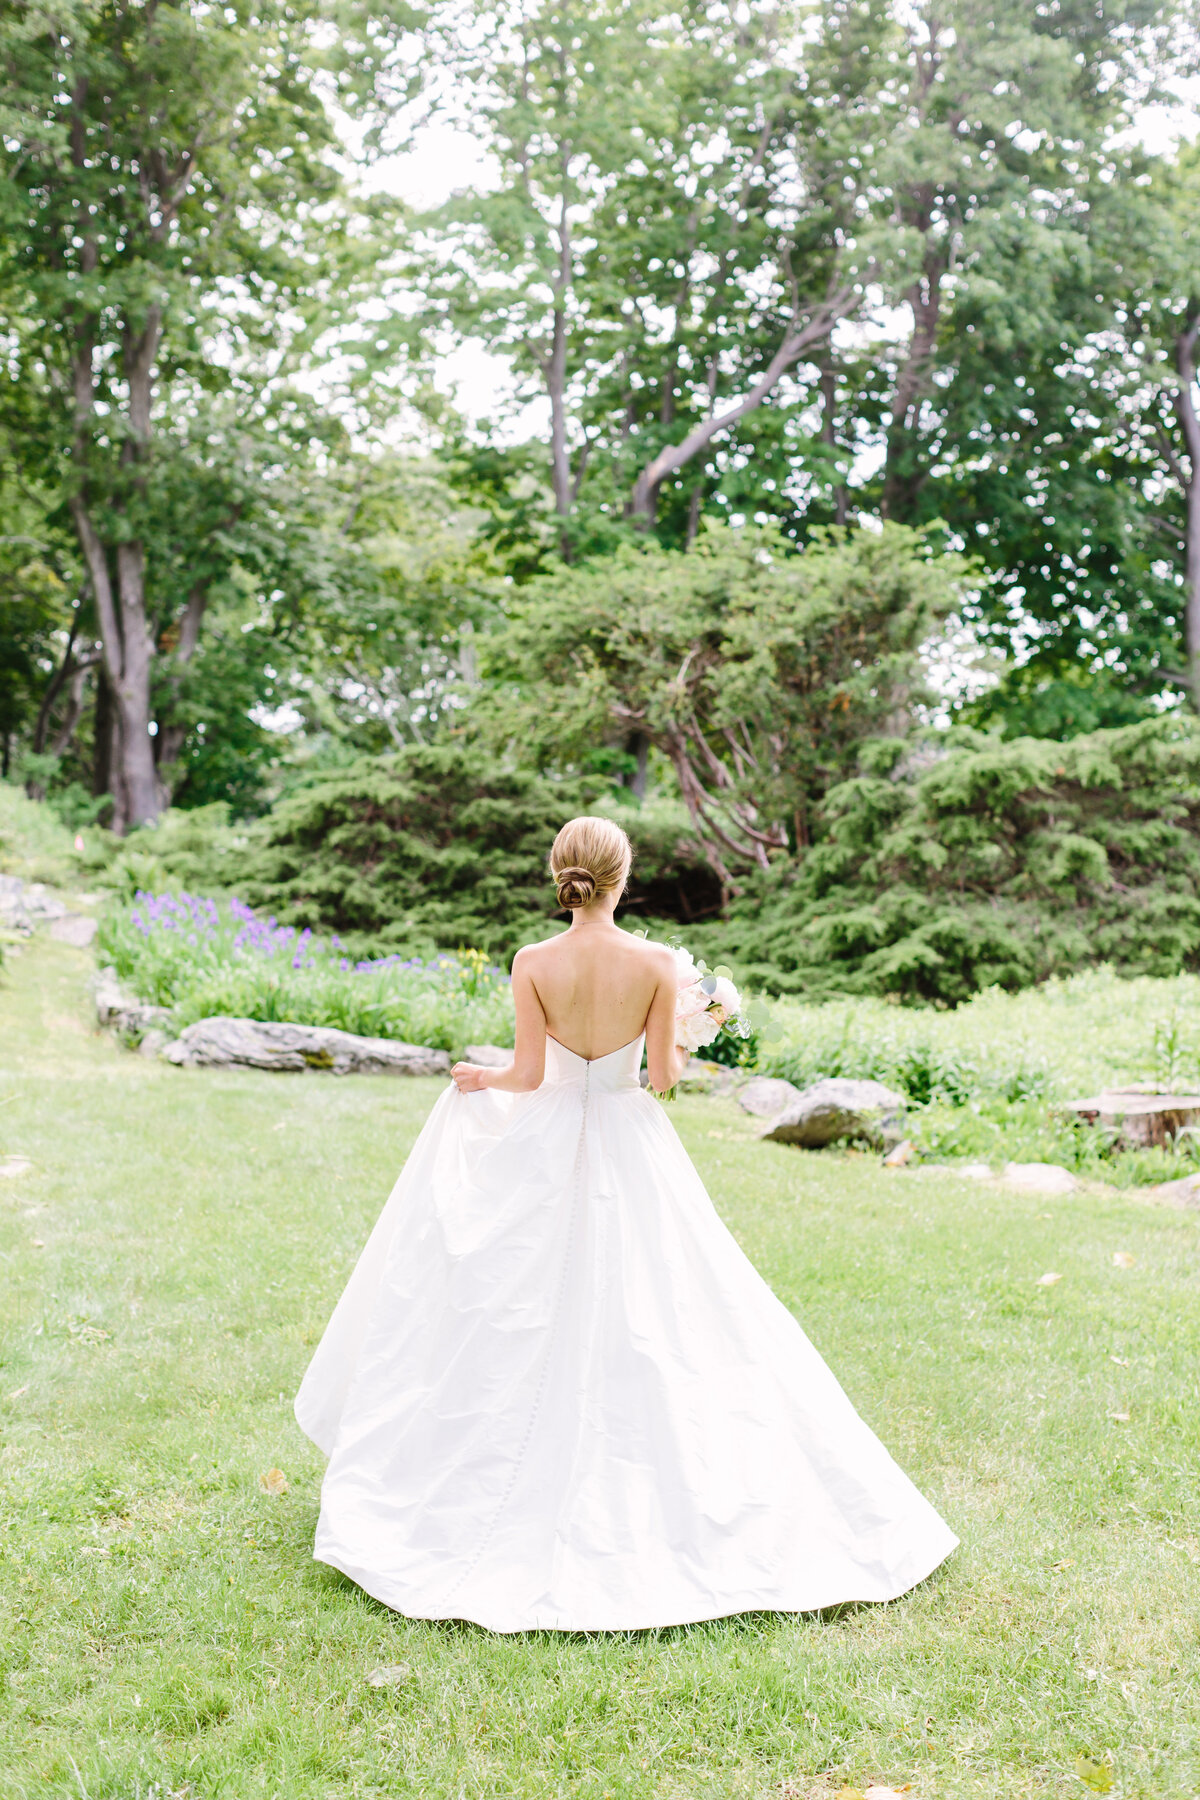 Rachel Buckley Weddings Photography Maine Wedding Lifestyle Studio Joyful Timeless Imagery Natural Portraits Destination13